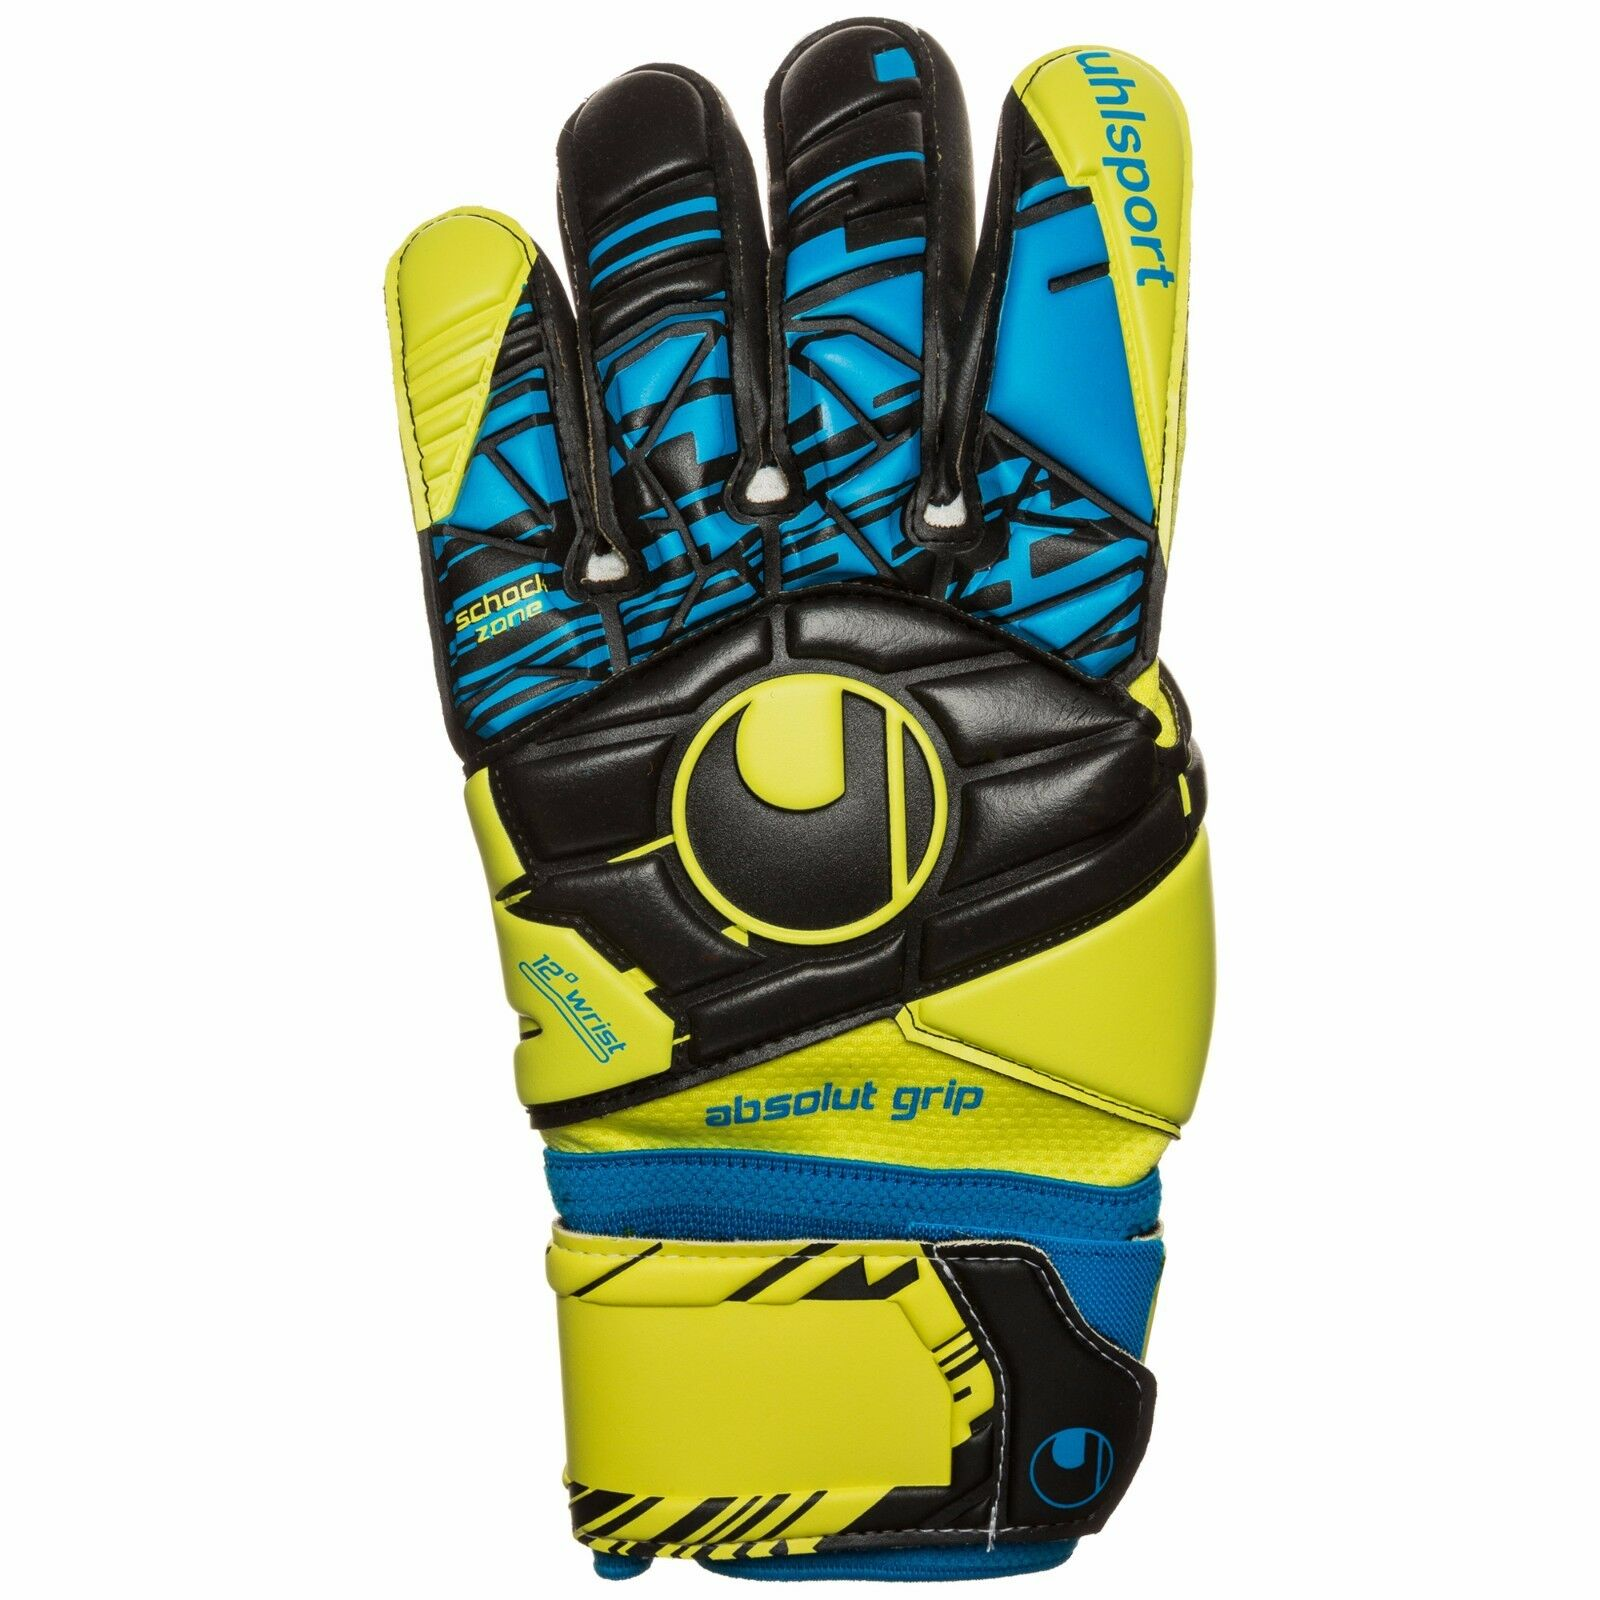 Uhlsport Speed Up Now Absolutgrip HN Half Negative TW Handschuhe 101110201